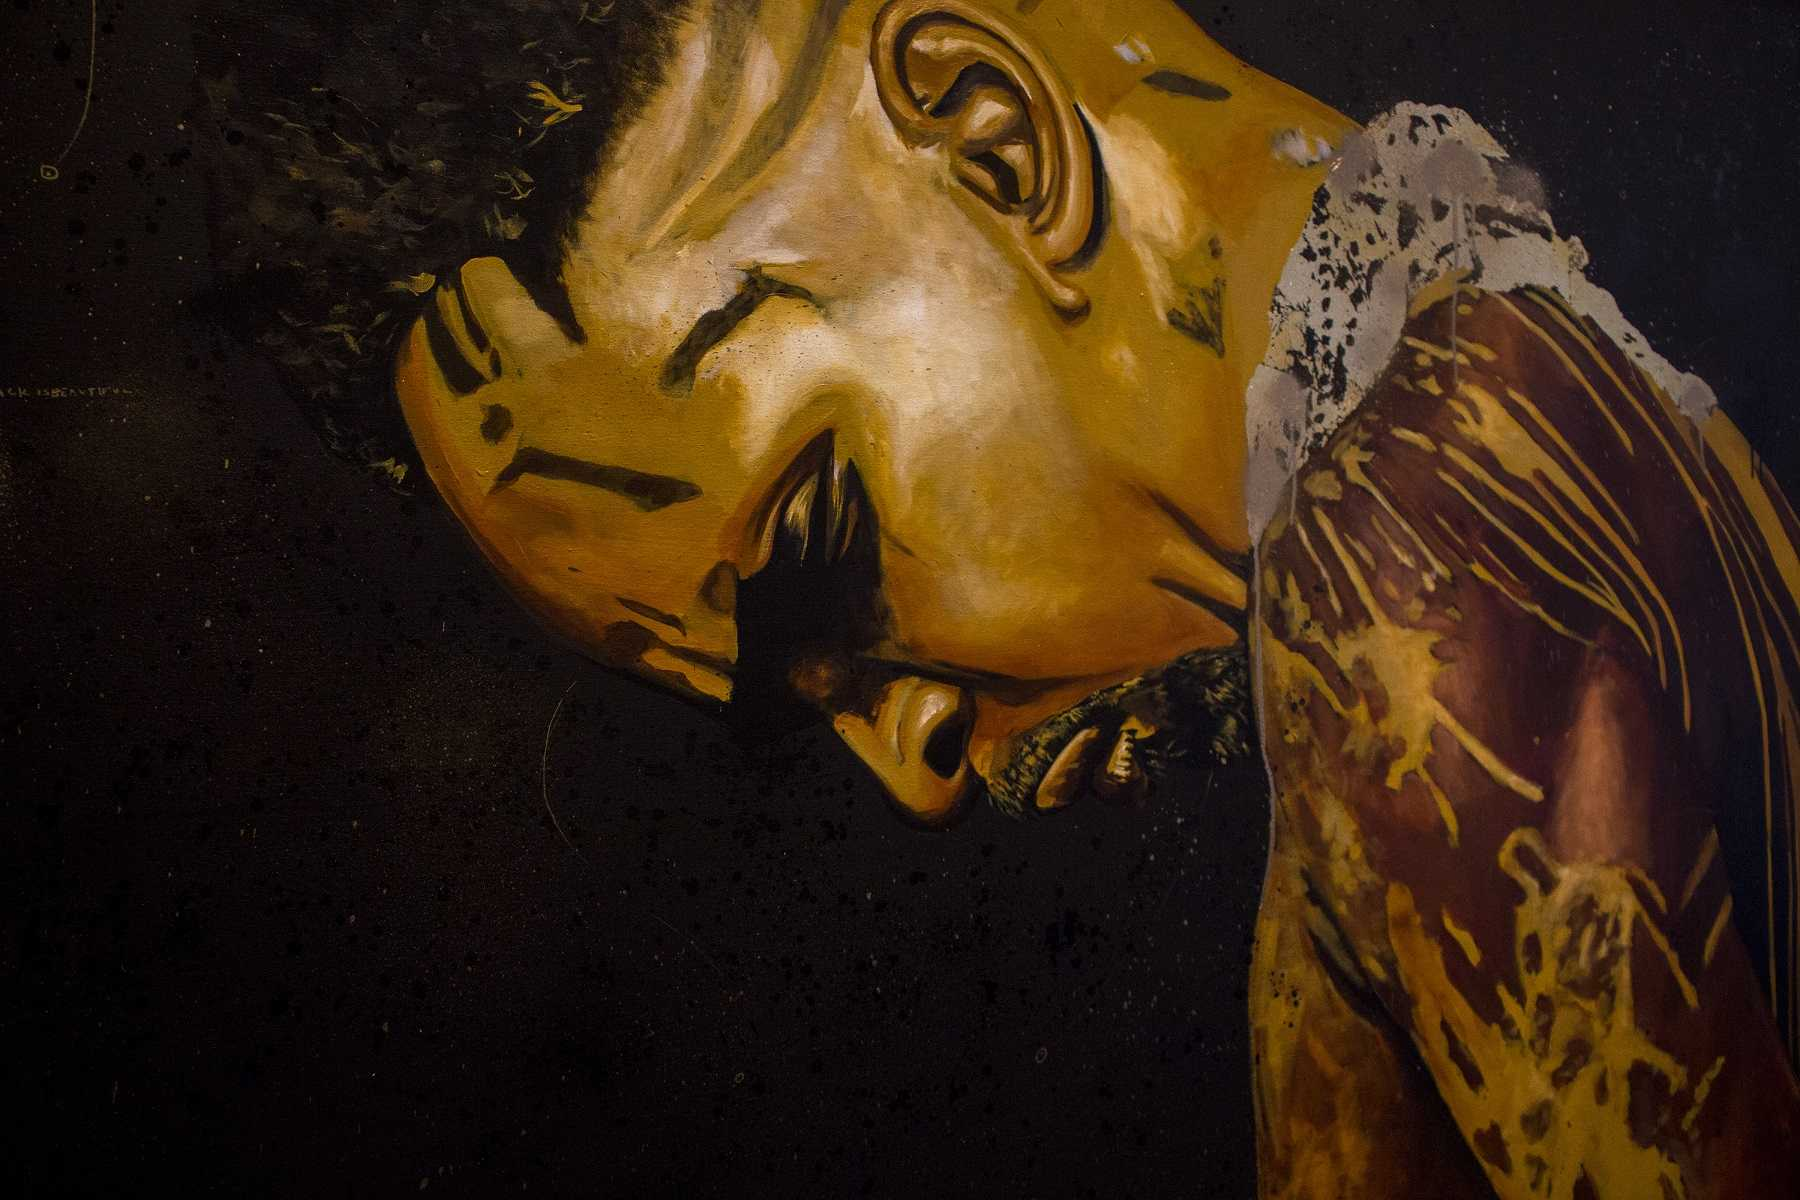 """Black Beauty"" is his name. It is one of many photos that were part of Fahamu Pecou's #BlackMatterLives gallery. This painting is an acrylic, enamel, spray paint and gold leaf on a canvas. According to the Pecou's artist statement, this was supposed to reorient angst and despair experienced by Black America through work that affirms the beauty, strength and resilience of Black people."